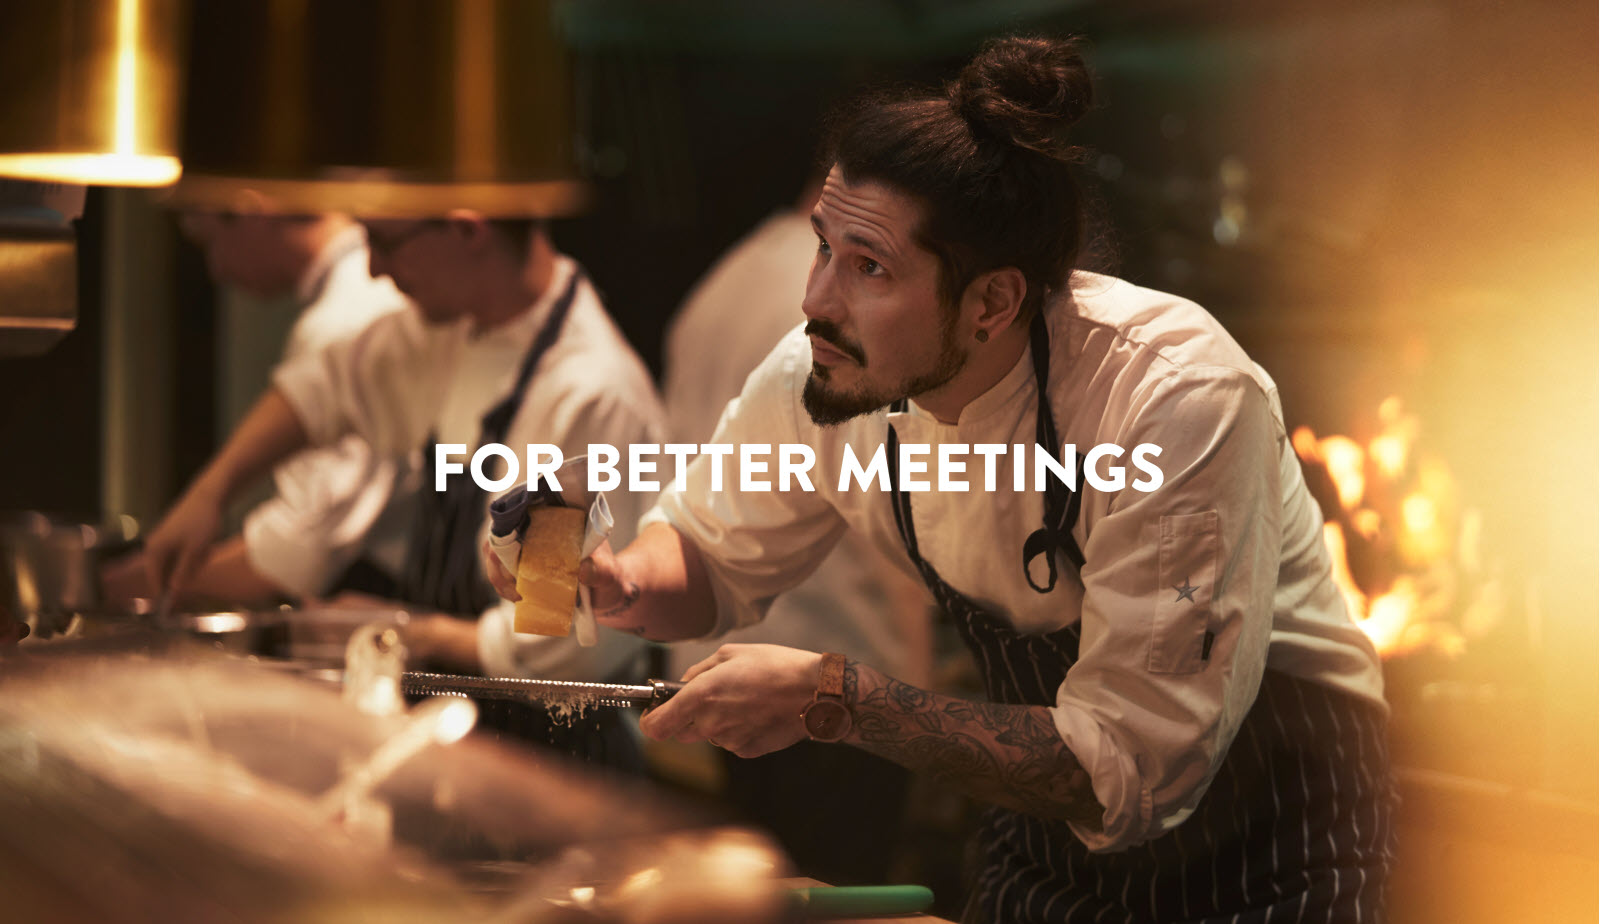 For better meetings / Better food